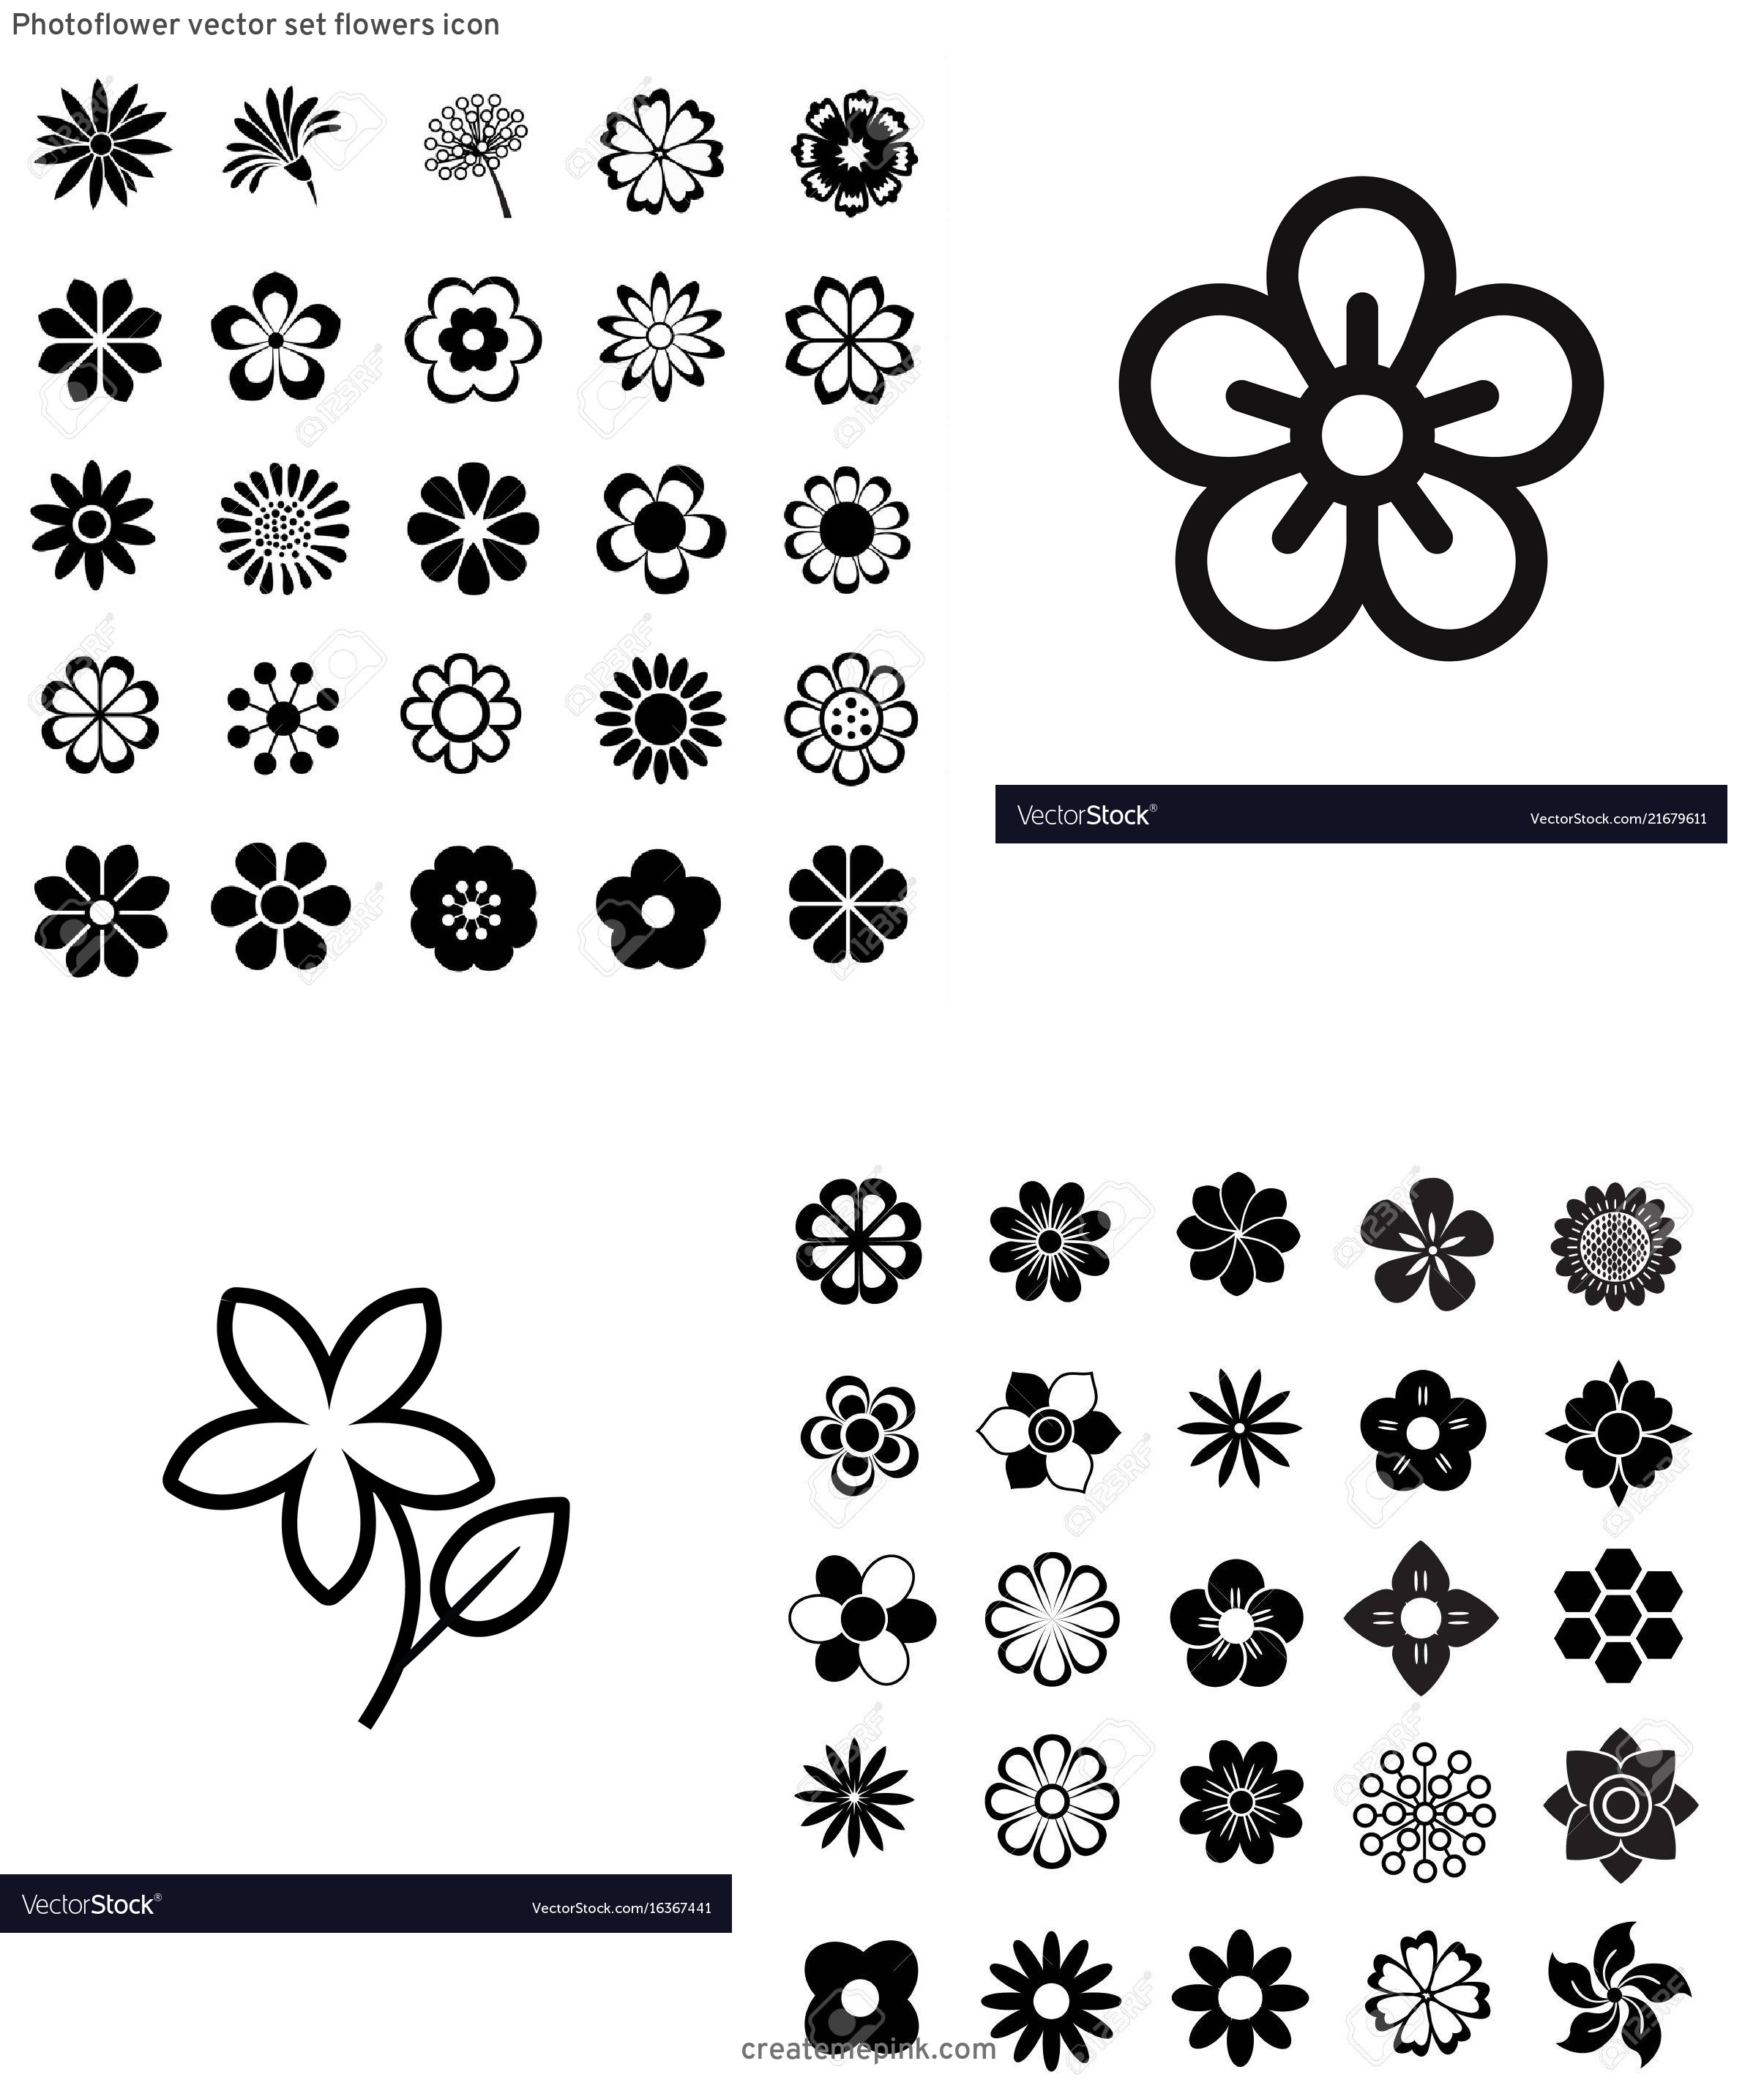 Flower Icon Stock Vector: Photoflower Vector Set Flowers Icon